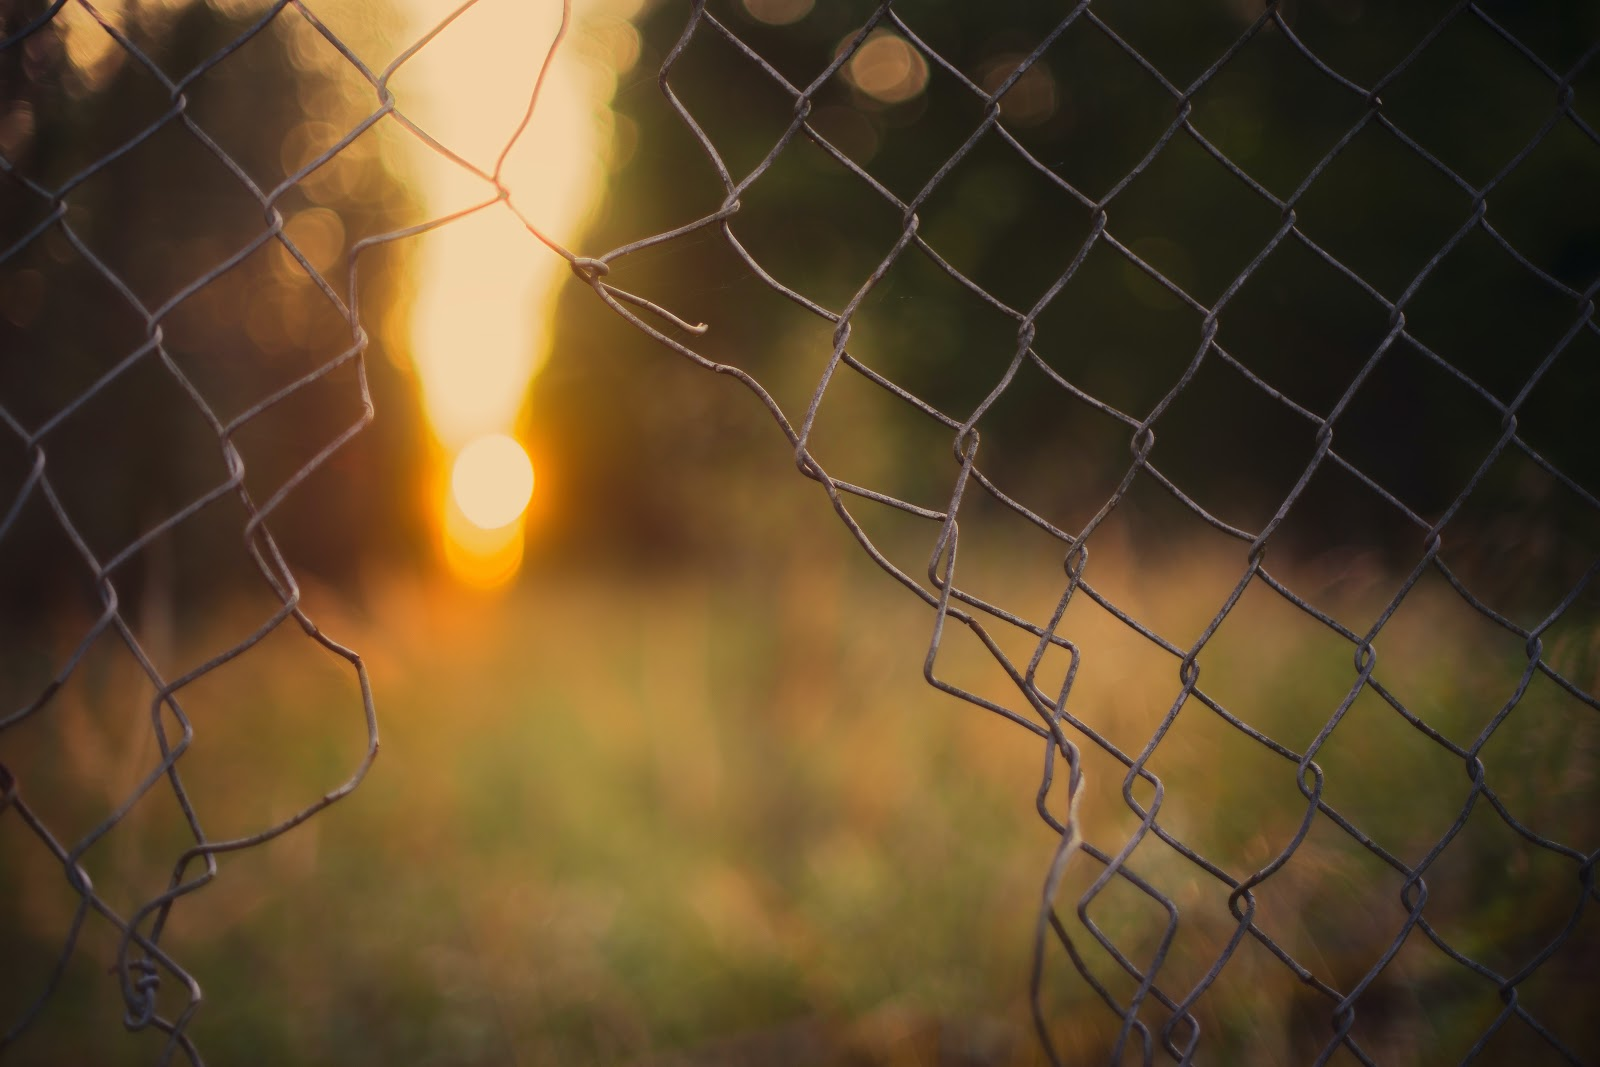 A hole in a chain link fence, leading into a grassy space with trees and sunshine.